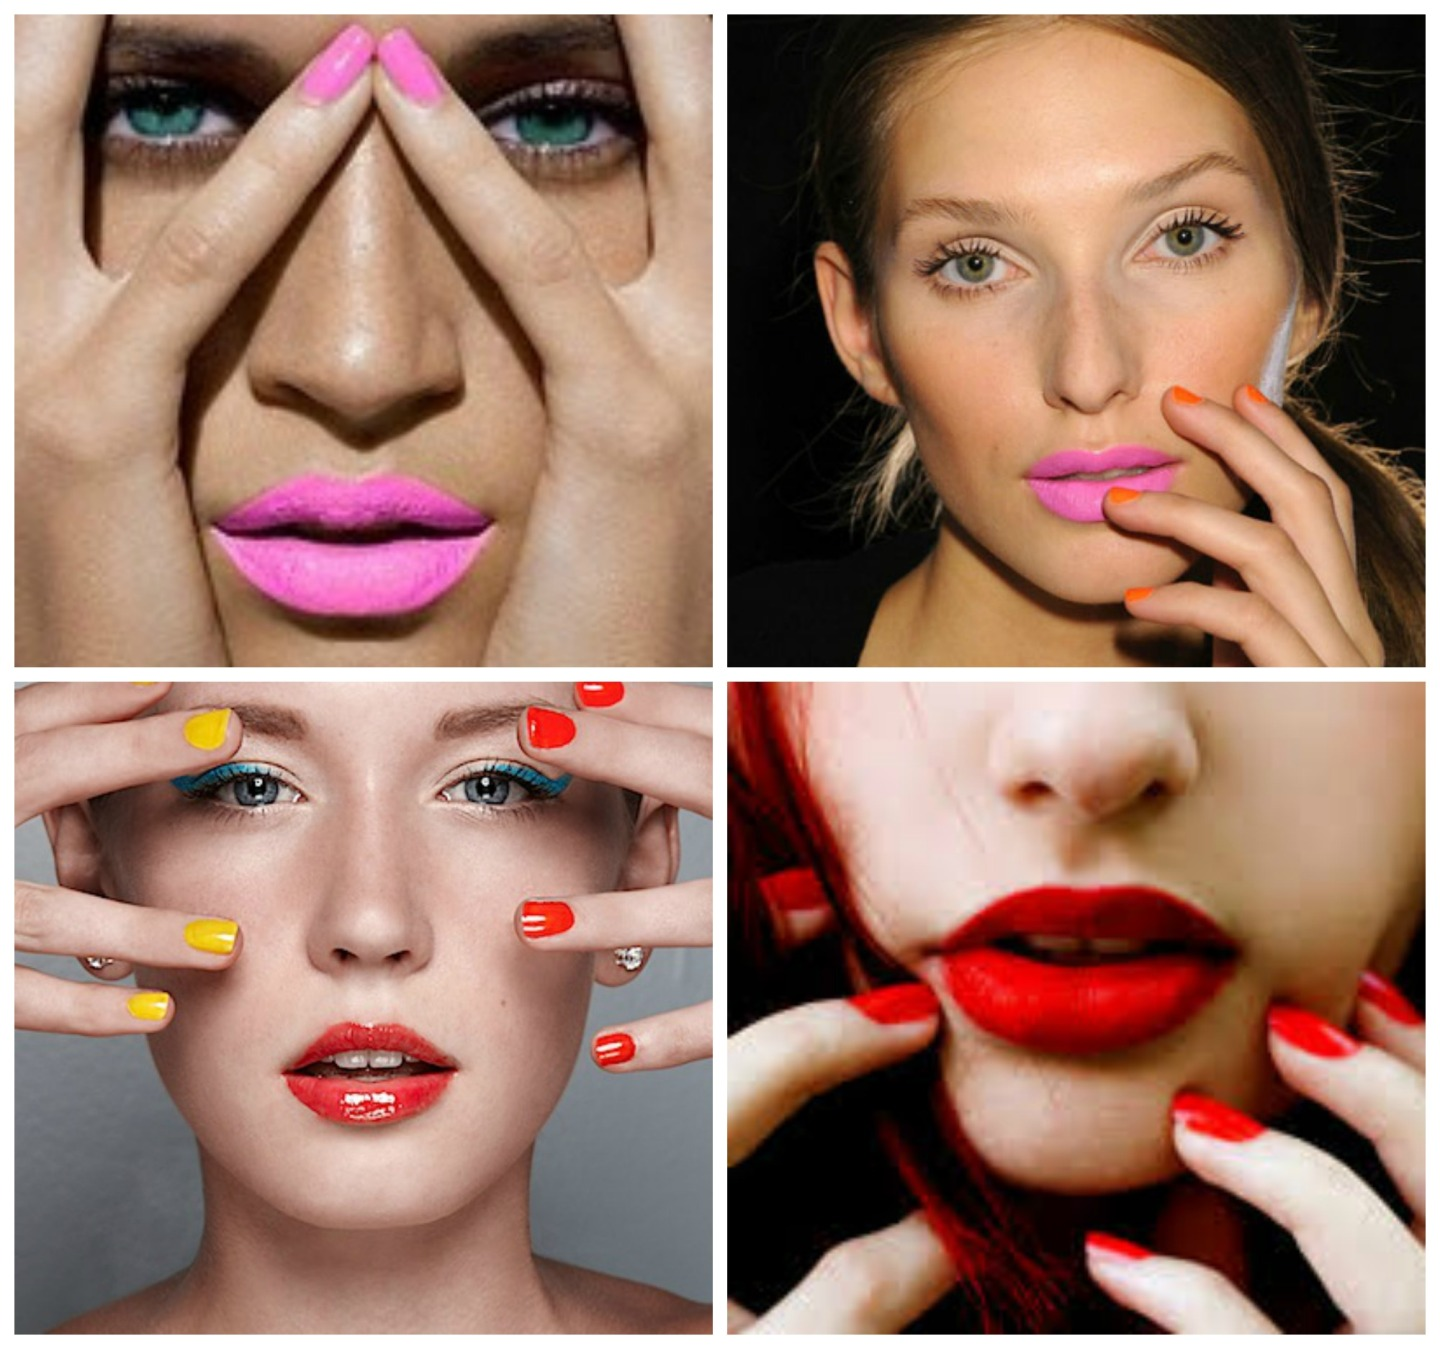 match lips and nails, lips and nails, don't match lips and nails, combinar uñas y labios, coordinar uñas y labios, color diferente para uñas y labios, mismo color para uñas y labios, nails, uñas, nail art, esmaltes, tutorial, uñas fáciles, uñas paso a paso, easy nails, DIY, step by step, adrixnails, blog mexicano, blogs mexicanos de nail art, bloggeras mexicanas